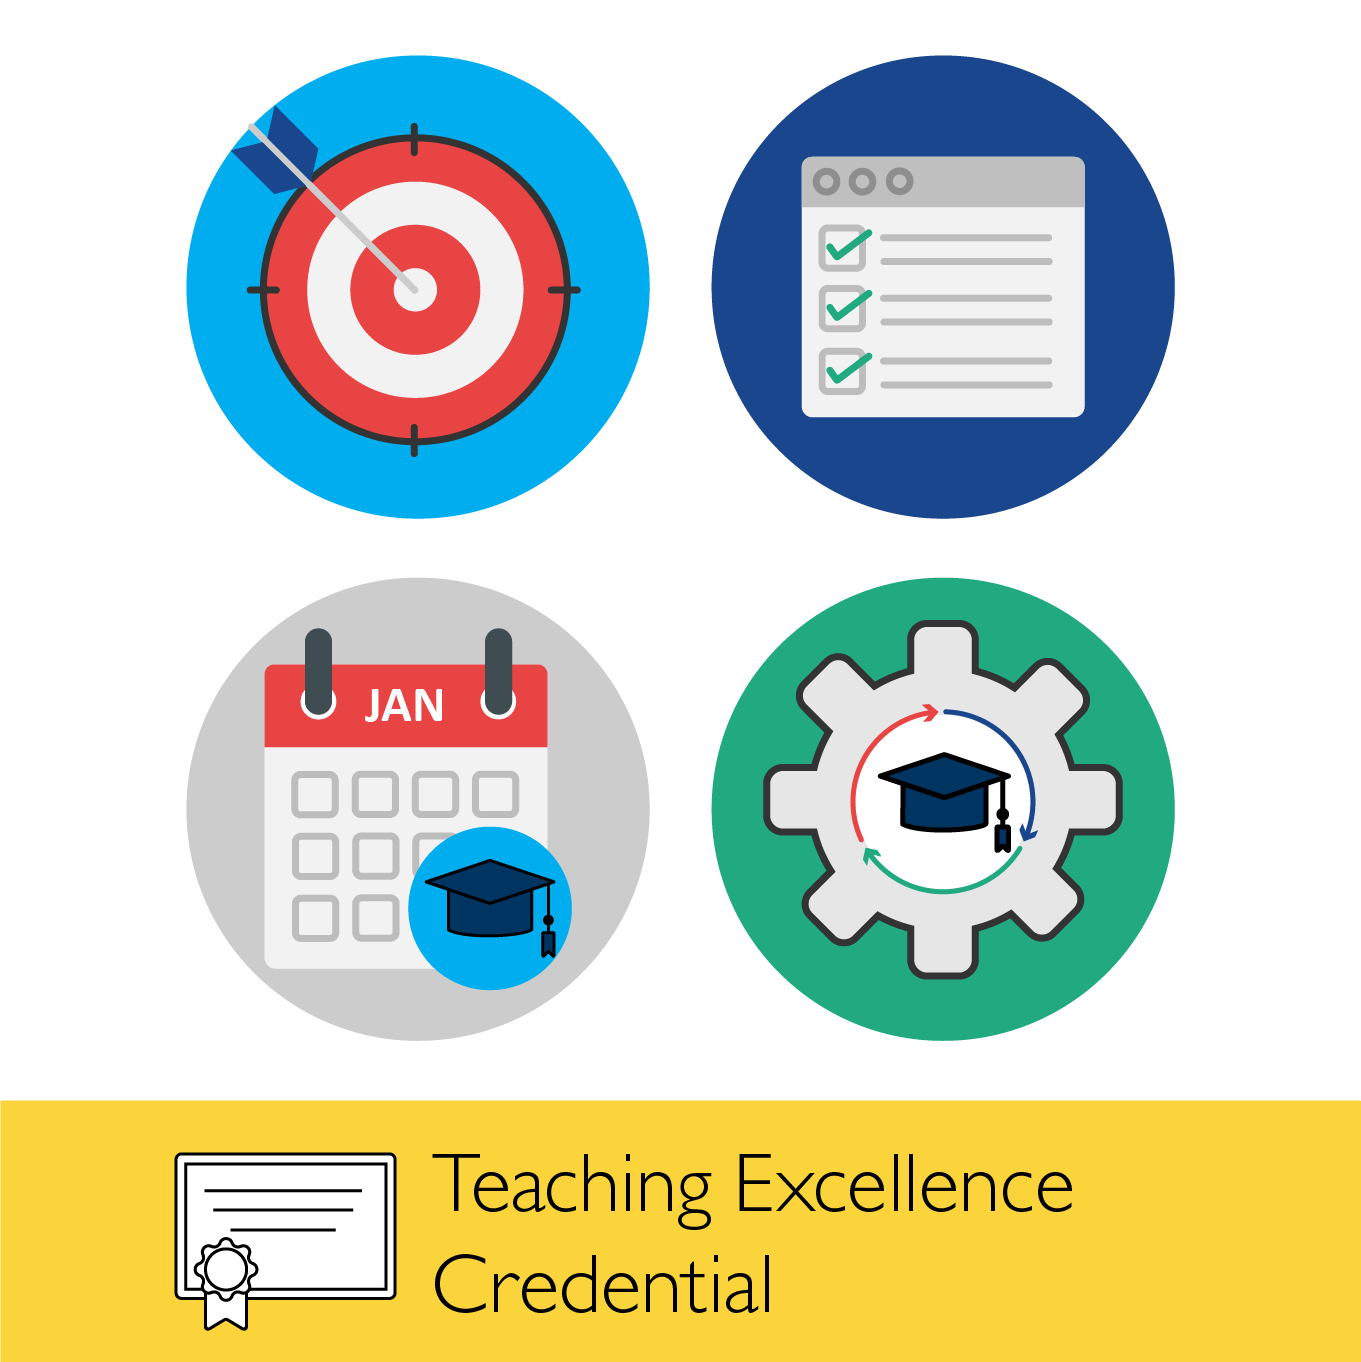 Course Design feature image includes the four icons that represents the modules: Learning Outcomes, Assessment Planning, Instructional Planning and Course Alignment